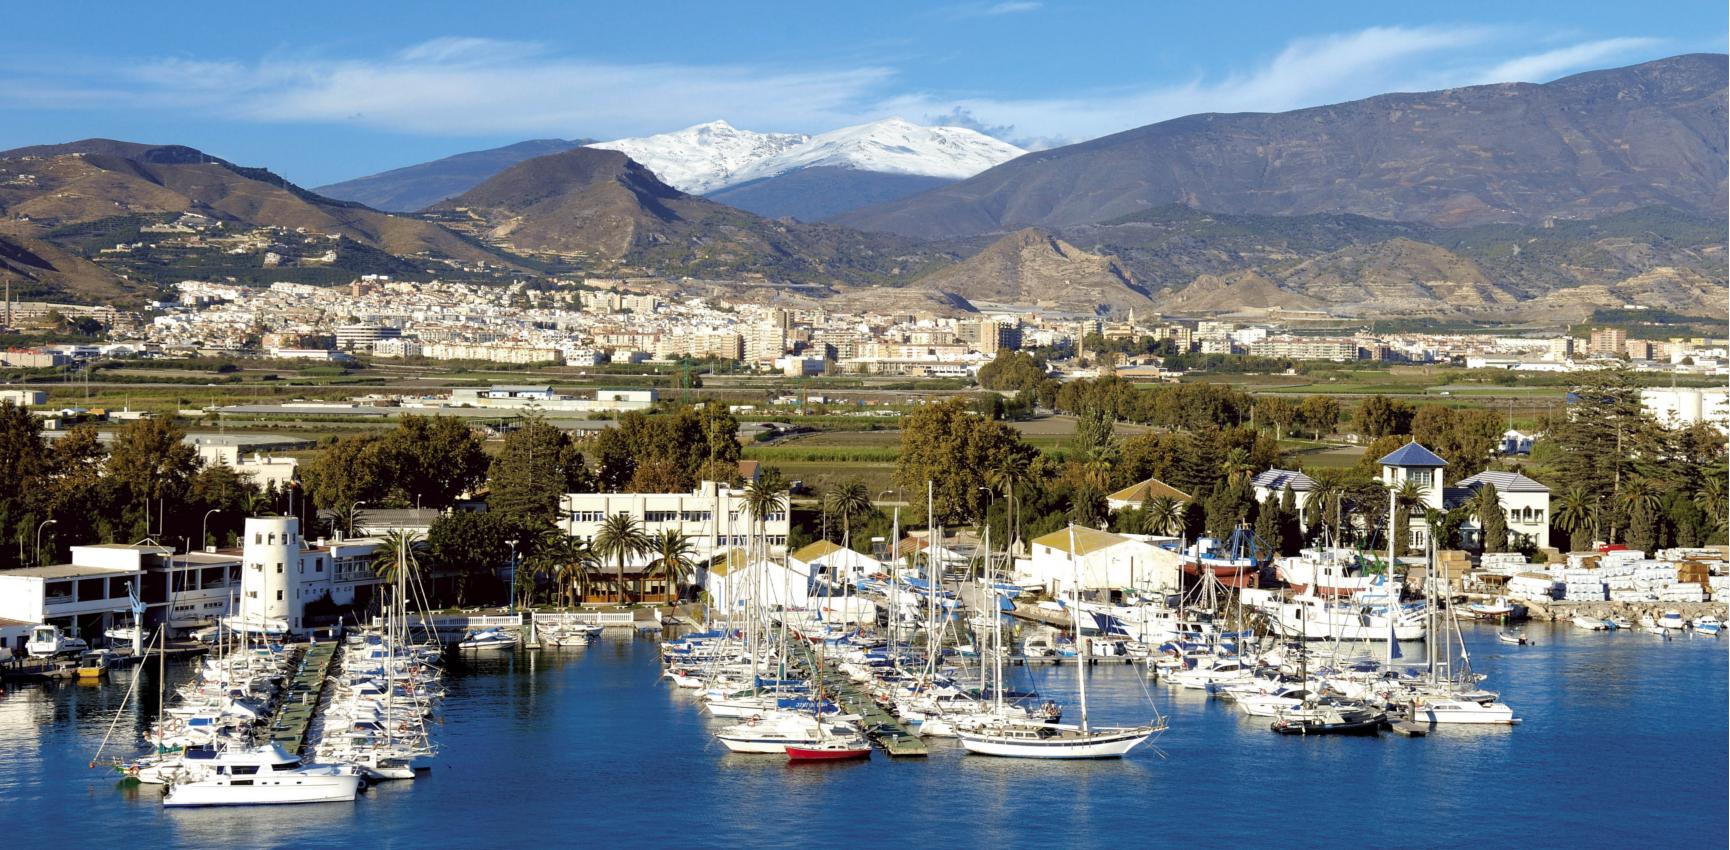 Transfer to Motril | Travel Guide by Malaga Cabbie